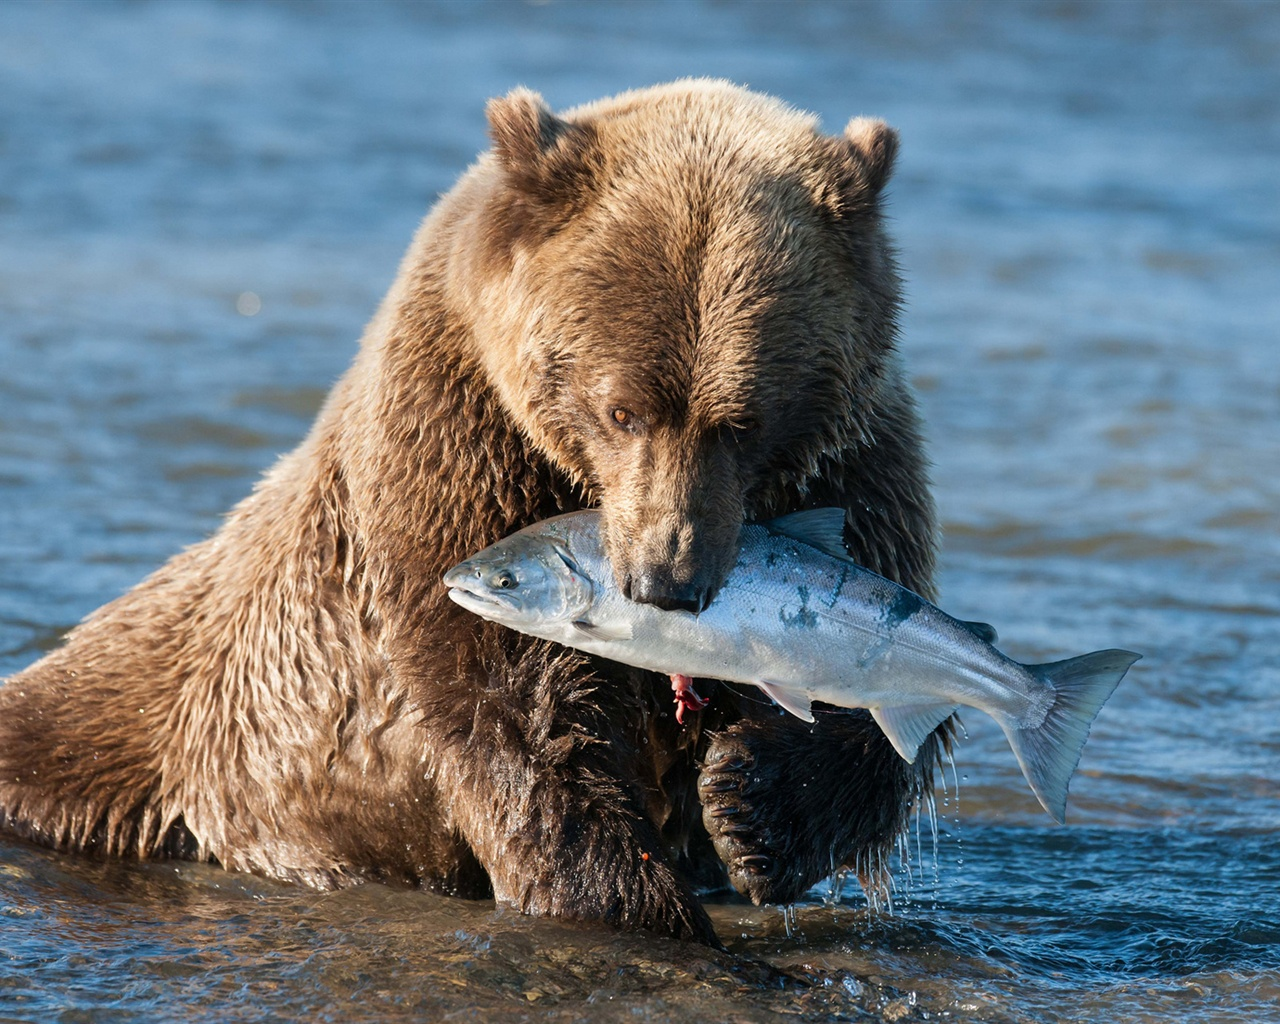 Cute Wallpaper For Iphone 4s Wallpaper Brown Bear Catching A Fish 1920x1200 Hd Picture